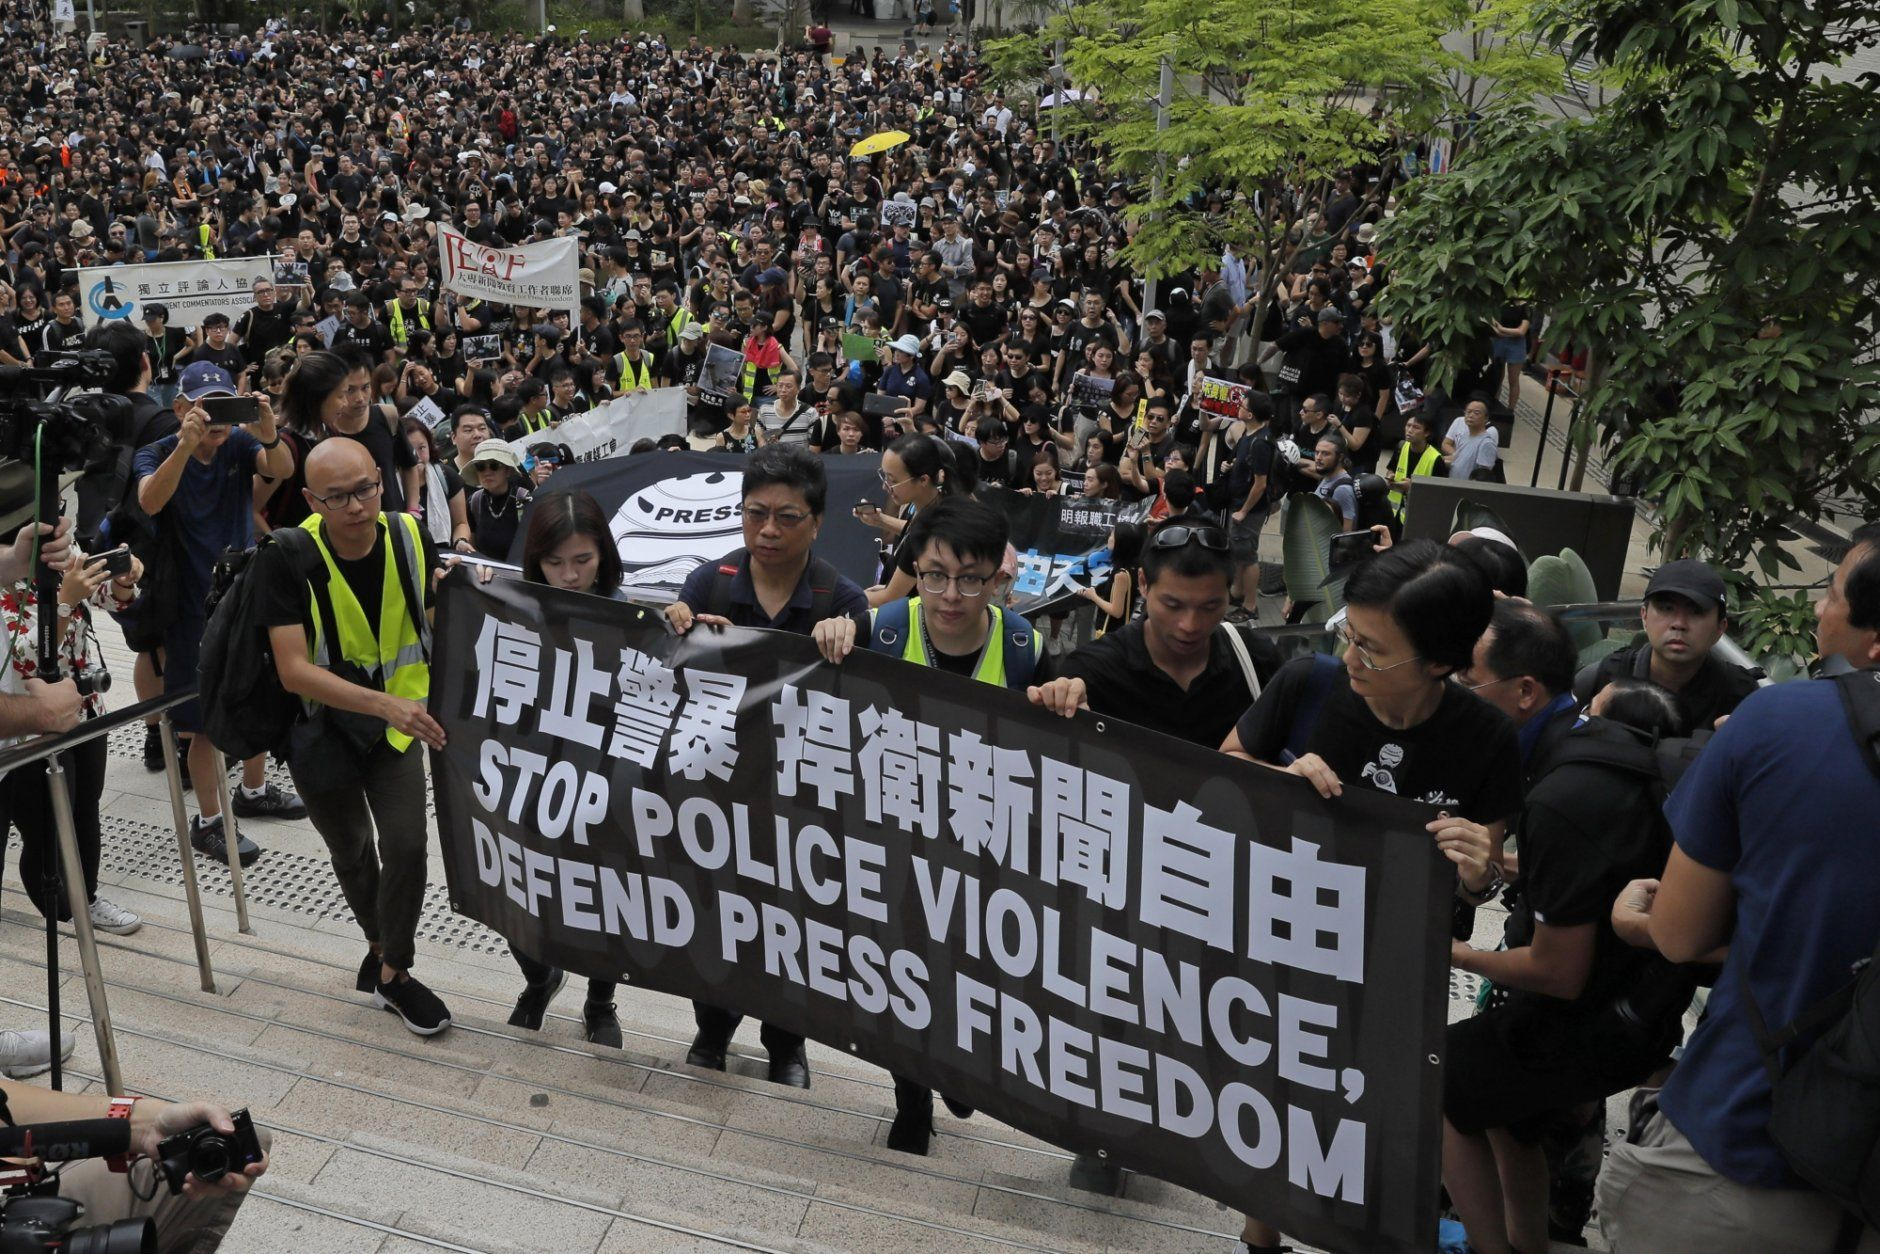 """Hundreds of journalists hold banner with words """"Stop police violence, defend press freedom"""" during a silent march to police headquarters and the government headquarters in Hong Kong, Sunday, July 14, 2019. They demand police to stop assaulting journalists and obstructing reporting. (AP Photo/Kin Cheung)"""